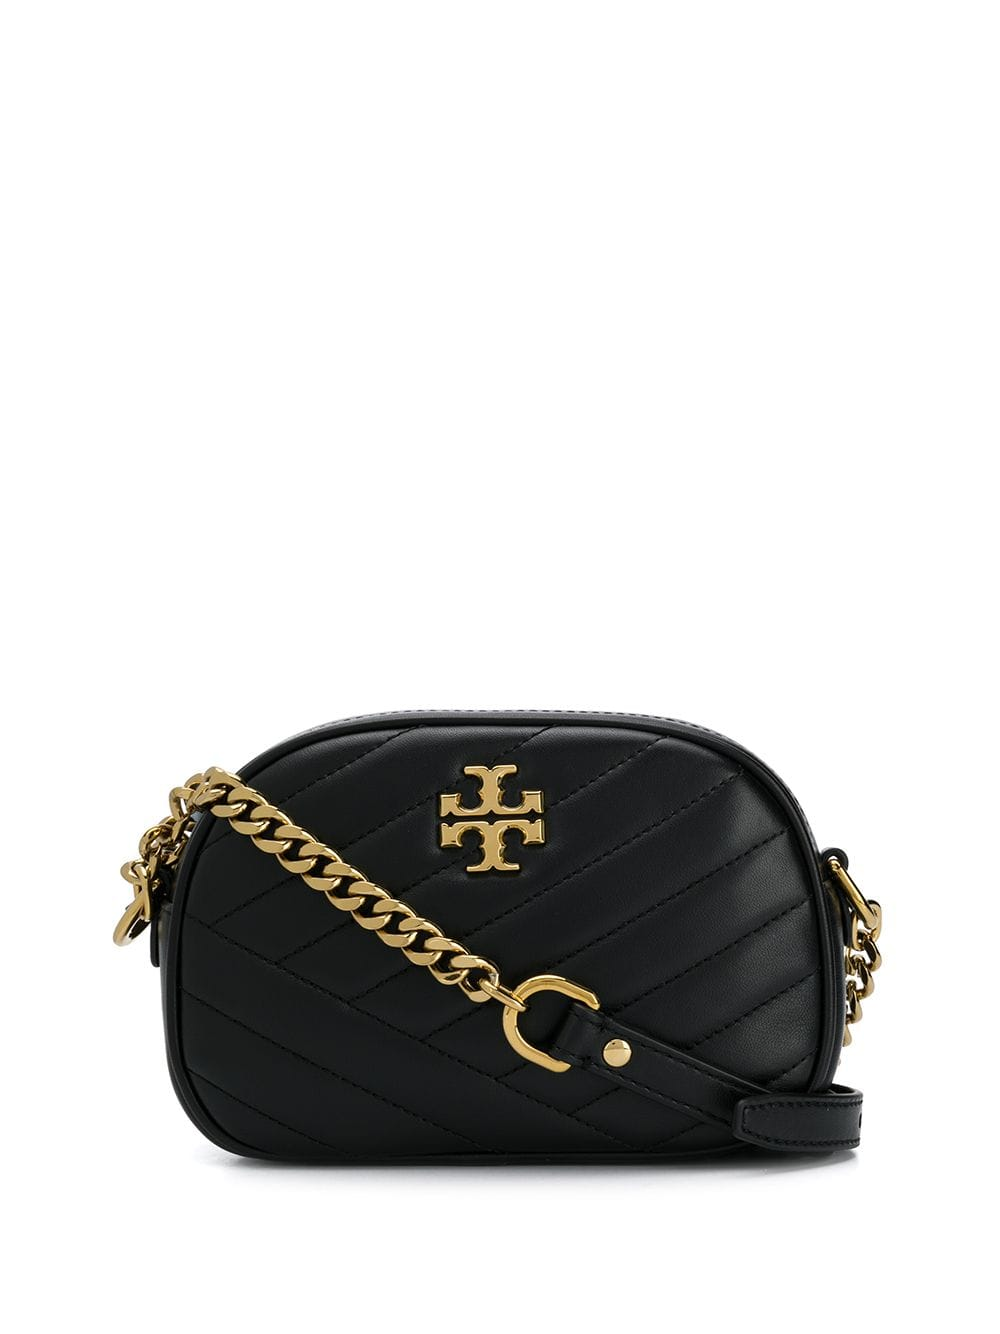 5ee9399129 Black Kira Chevron Small Camera Bag - TORY BURCH - Russocapri